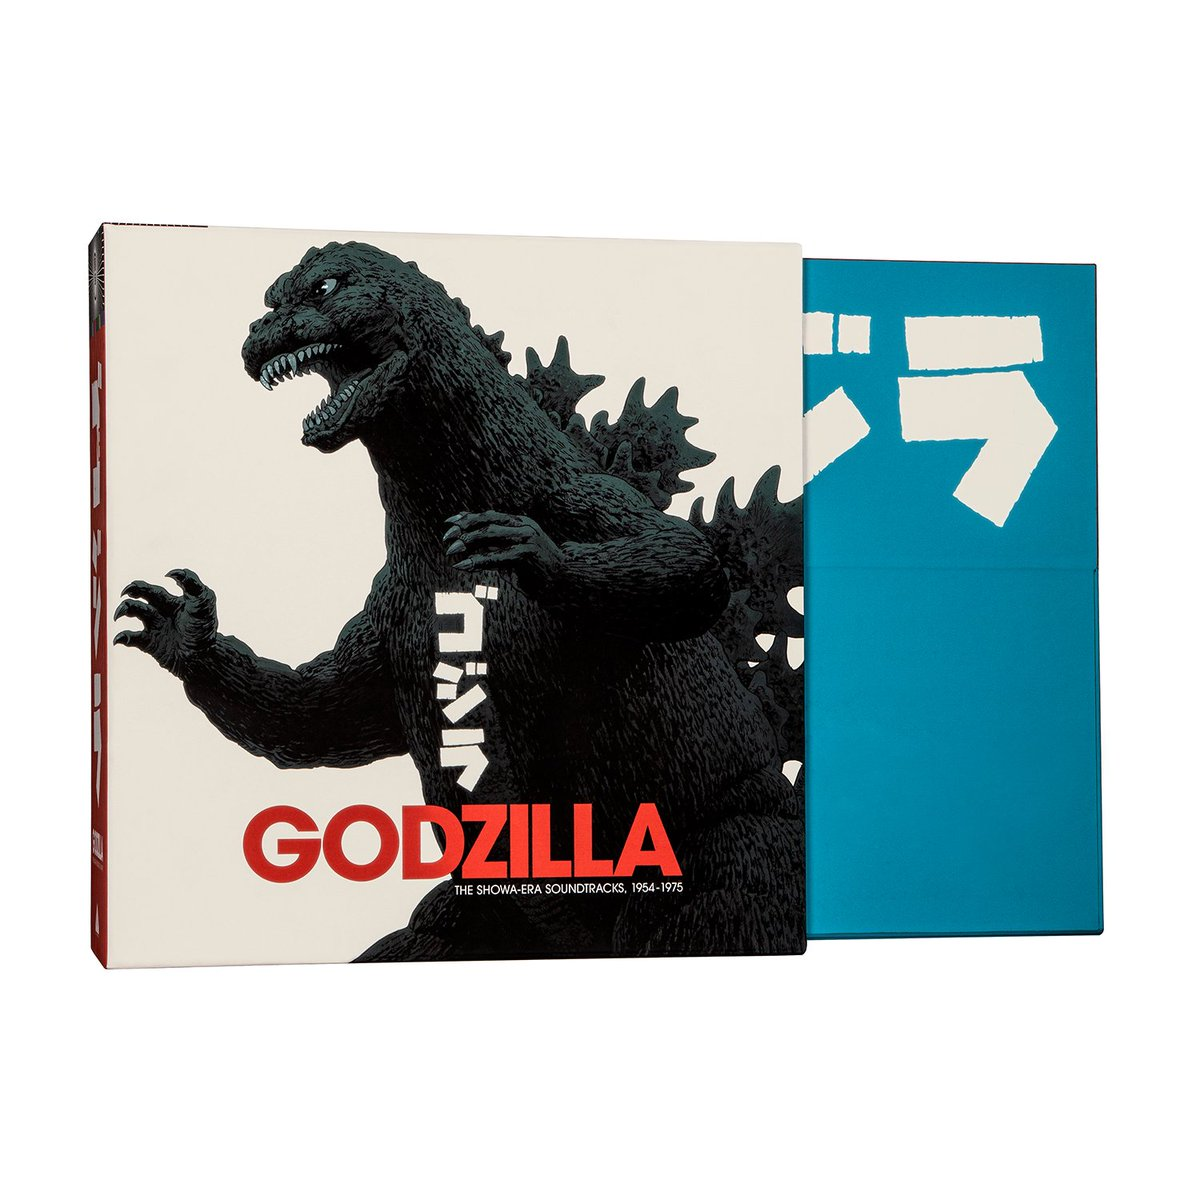 I can't stop thinking about this 18LP Godzilla boxset from @waxworkrecords